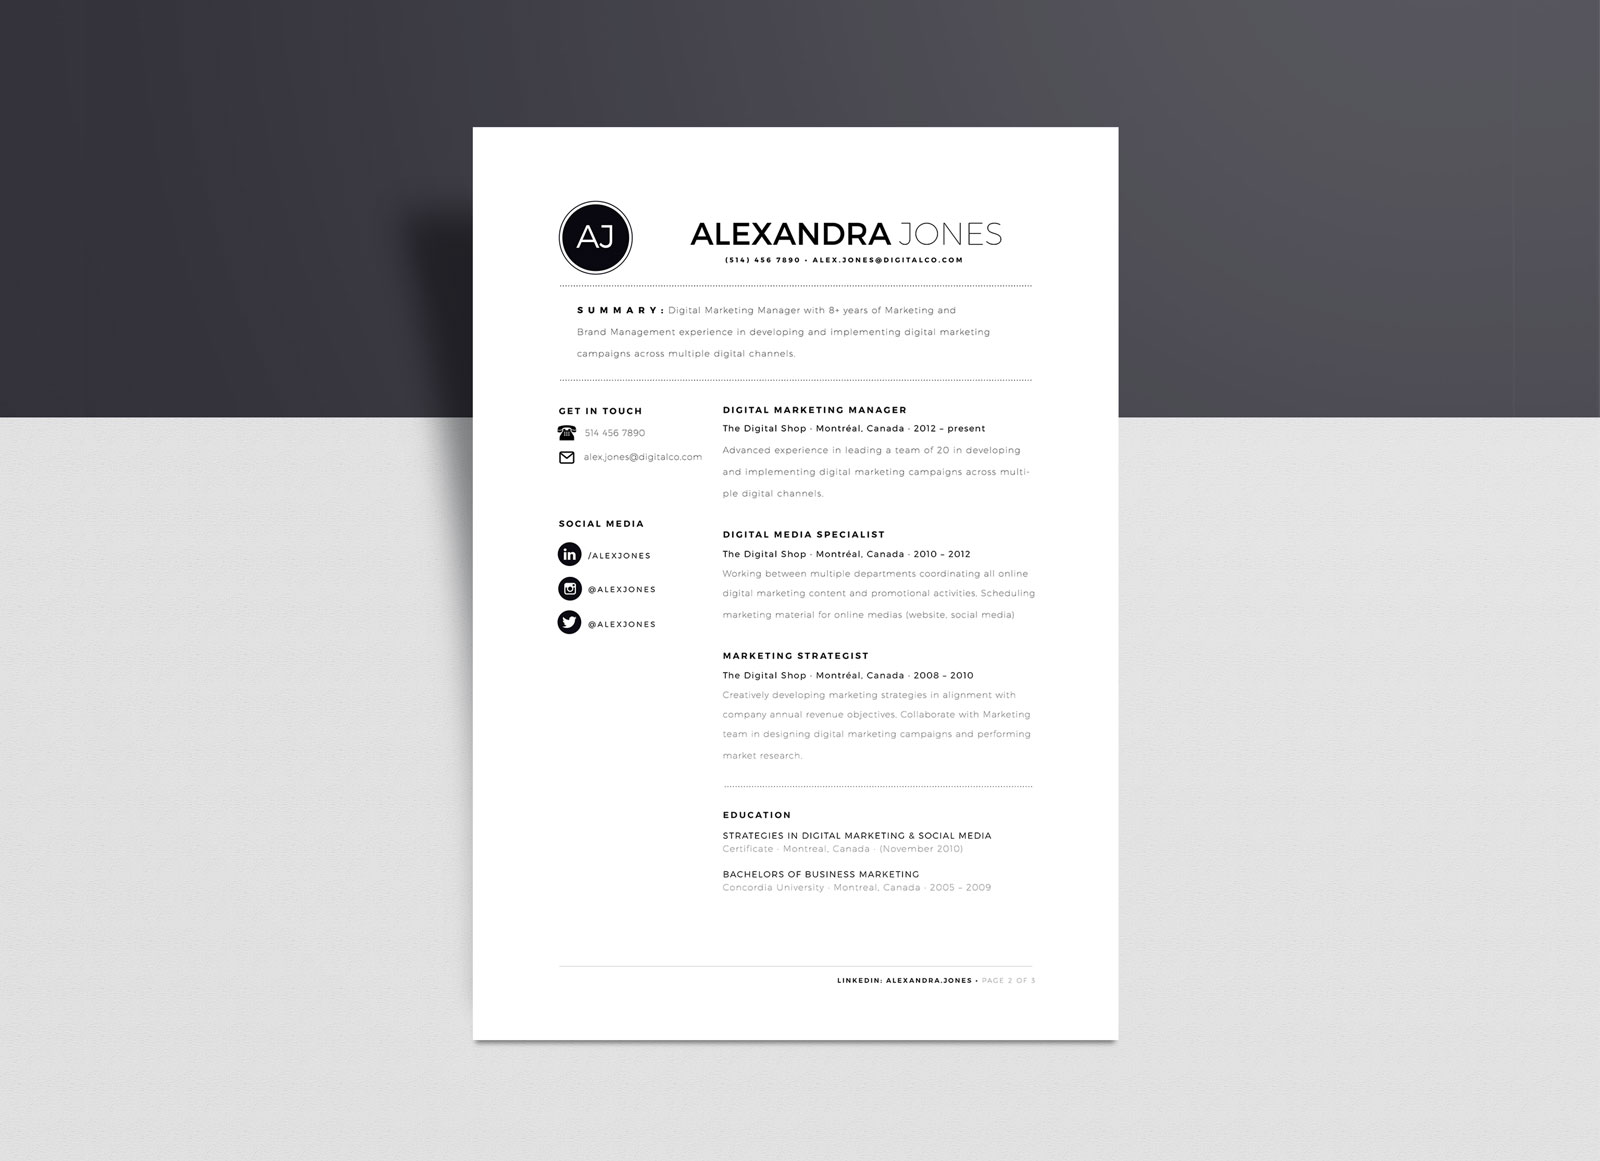 free minimalist resume template in word format good illustrator minimalistic objective Resume Free Resume Illustrator Template